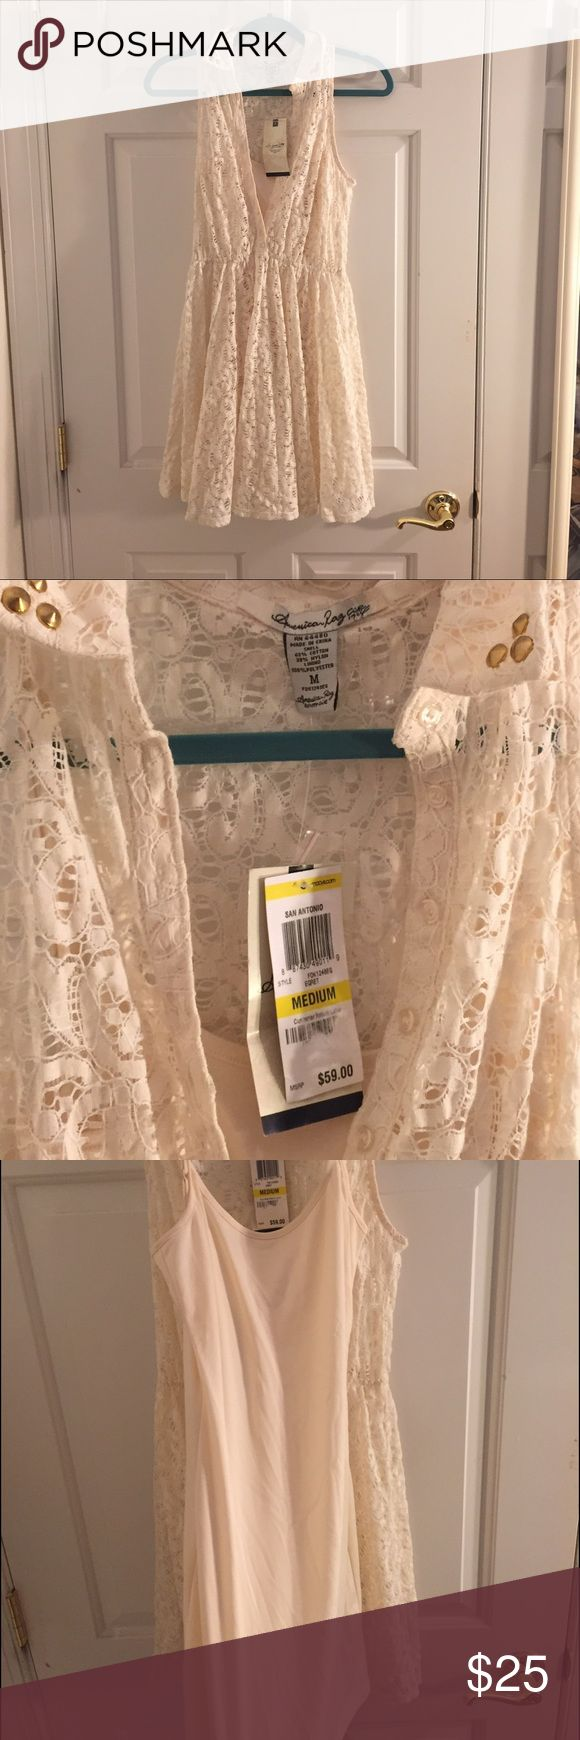 American Rag cream mini dress medium American Rag cream mini dress medium. Never worn net. It has a lace outer layer and then an inner layer to cover up. It's a really beautiful dress. American Rag Dresses Mini